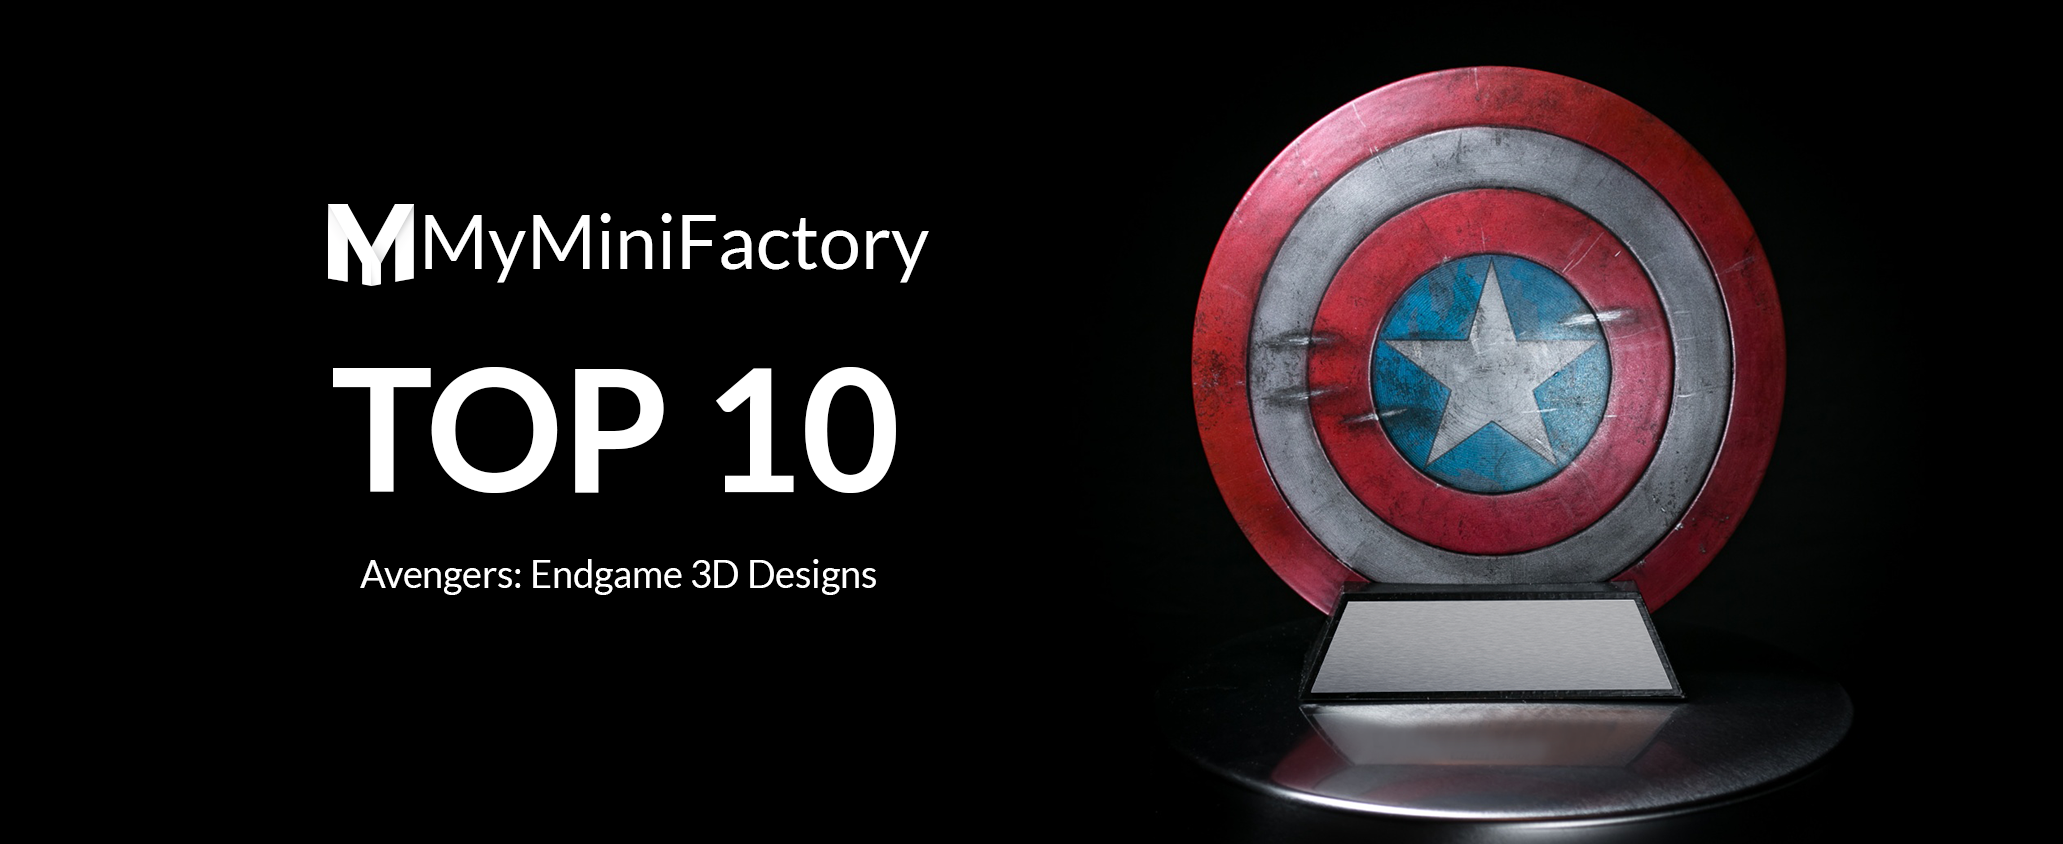 Avengers: Endgame, Top 10 Best 3D Designs to Print Now